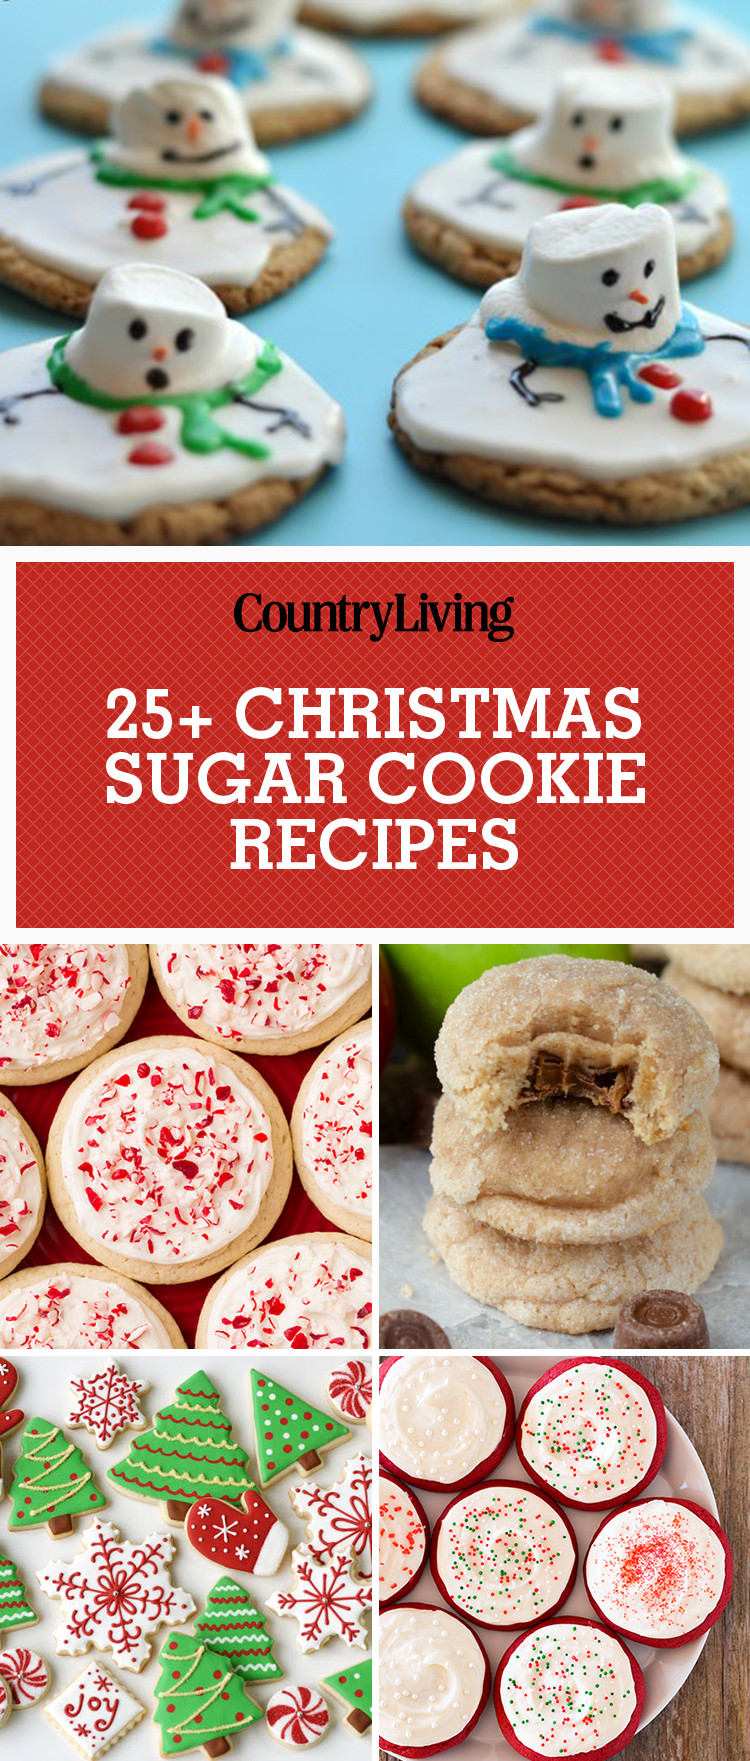 Easy Christmas Sugar Cookies Recipes  25 Easy Christmas Sugar Cookies Recipes & Decorating